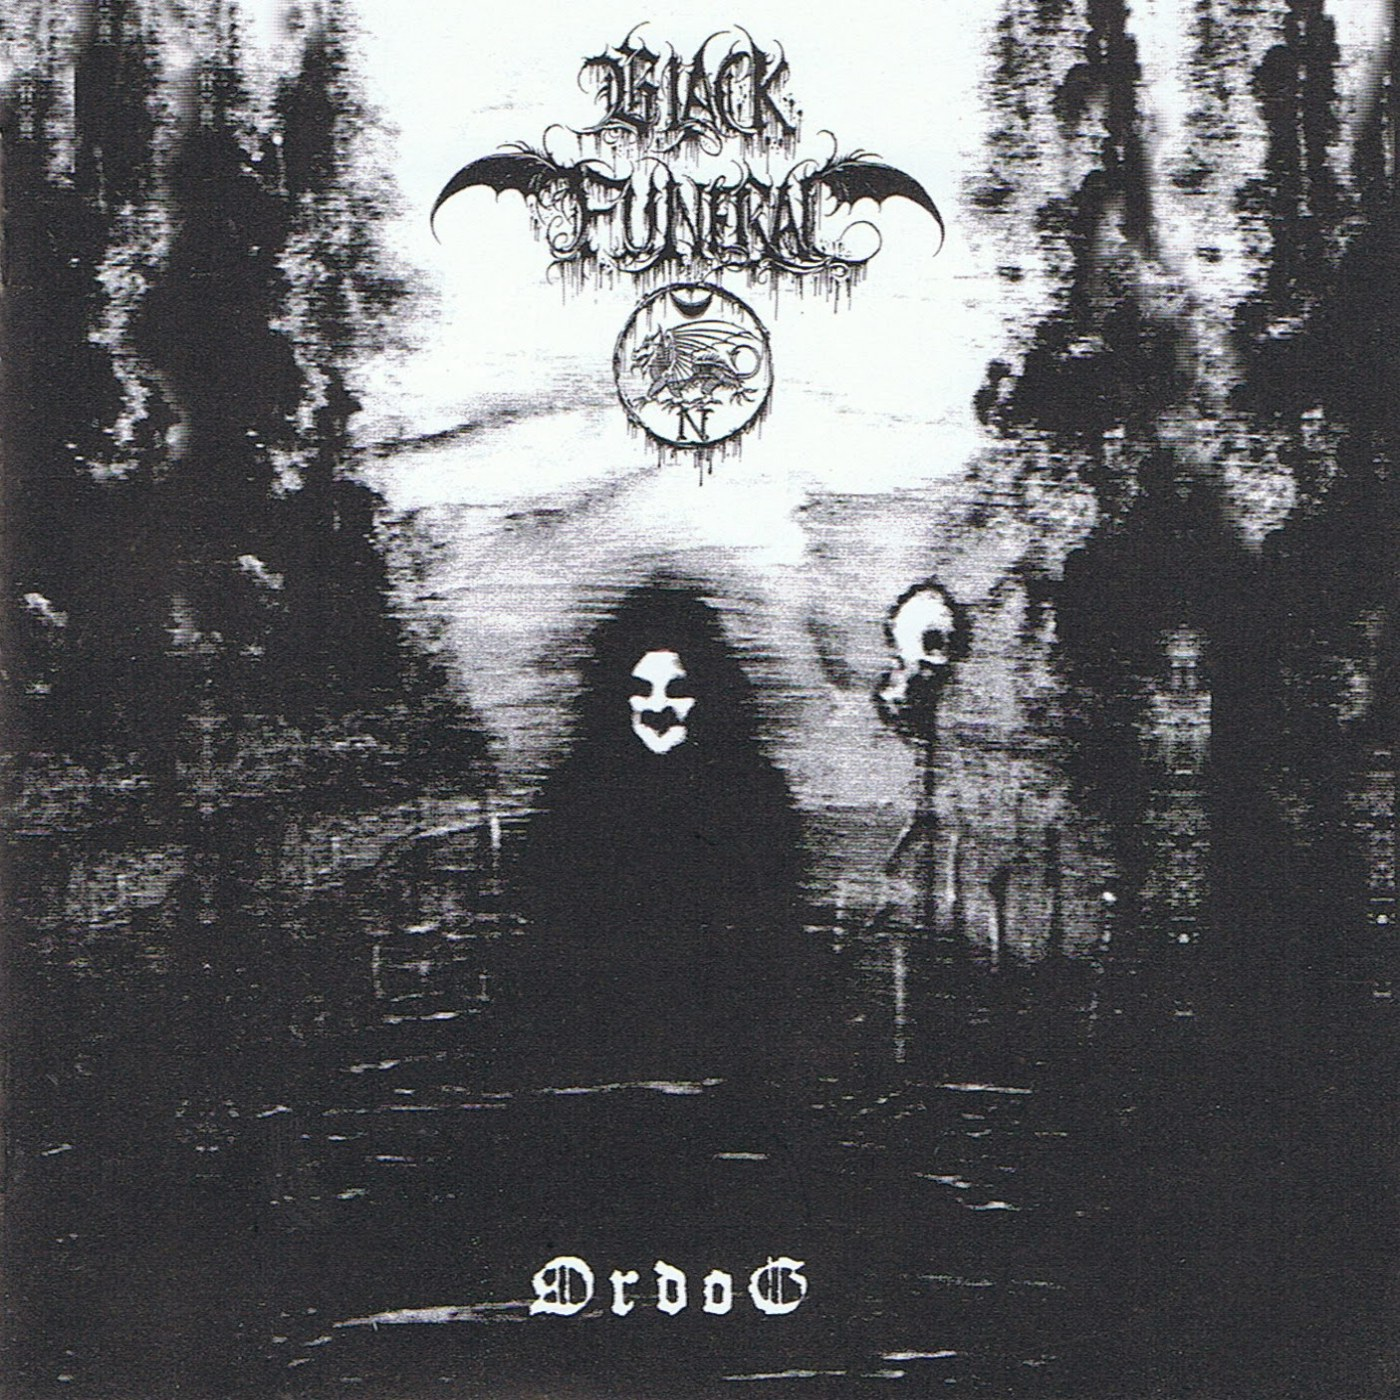 Review for Black Funeral - Ordog